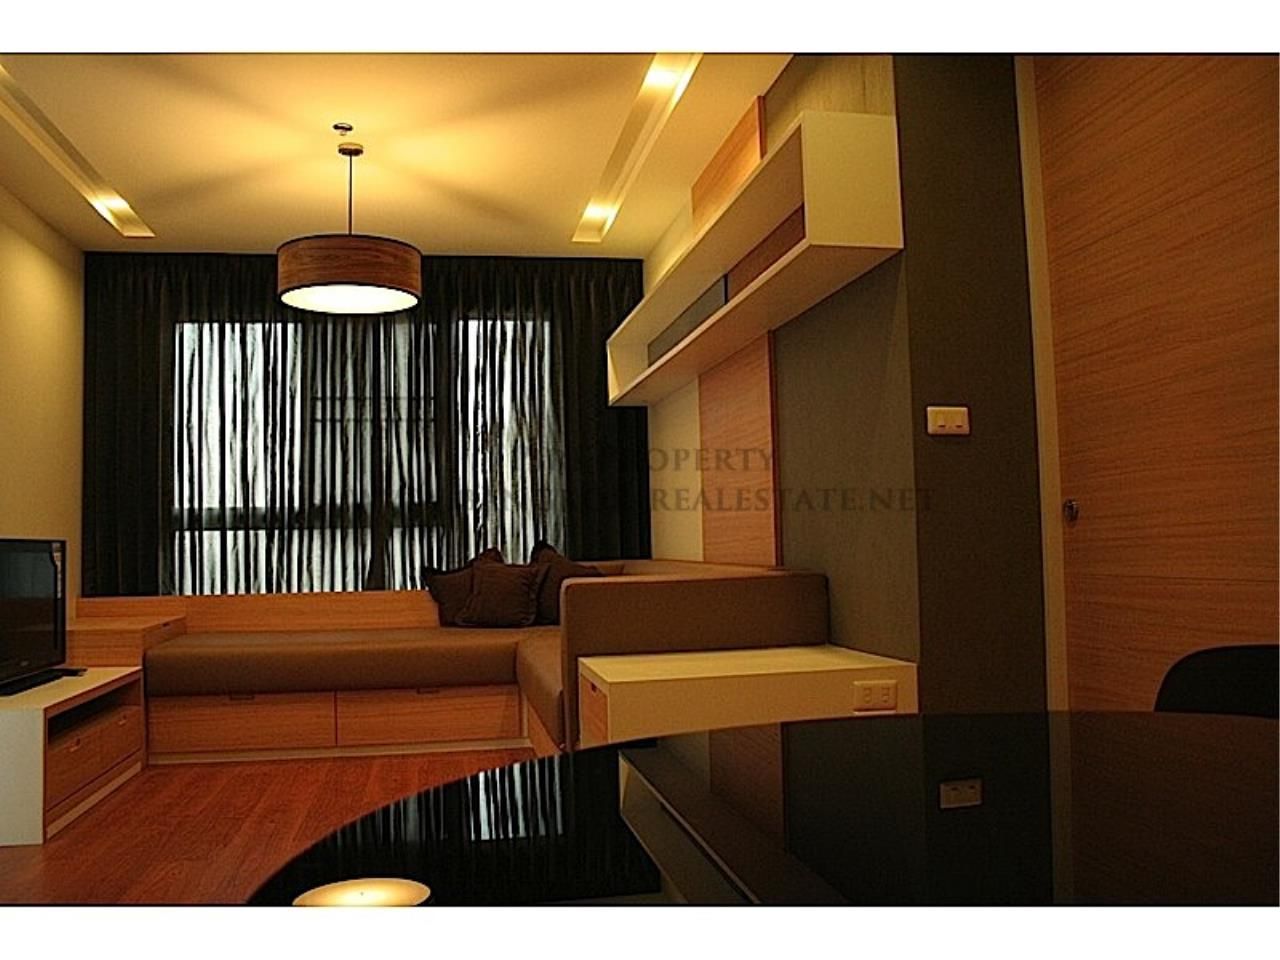 Piri Property Agency's Nicely Furnished One Bedroom Unit - Condo One X 4